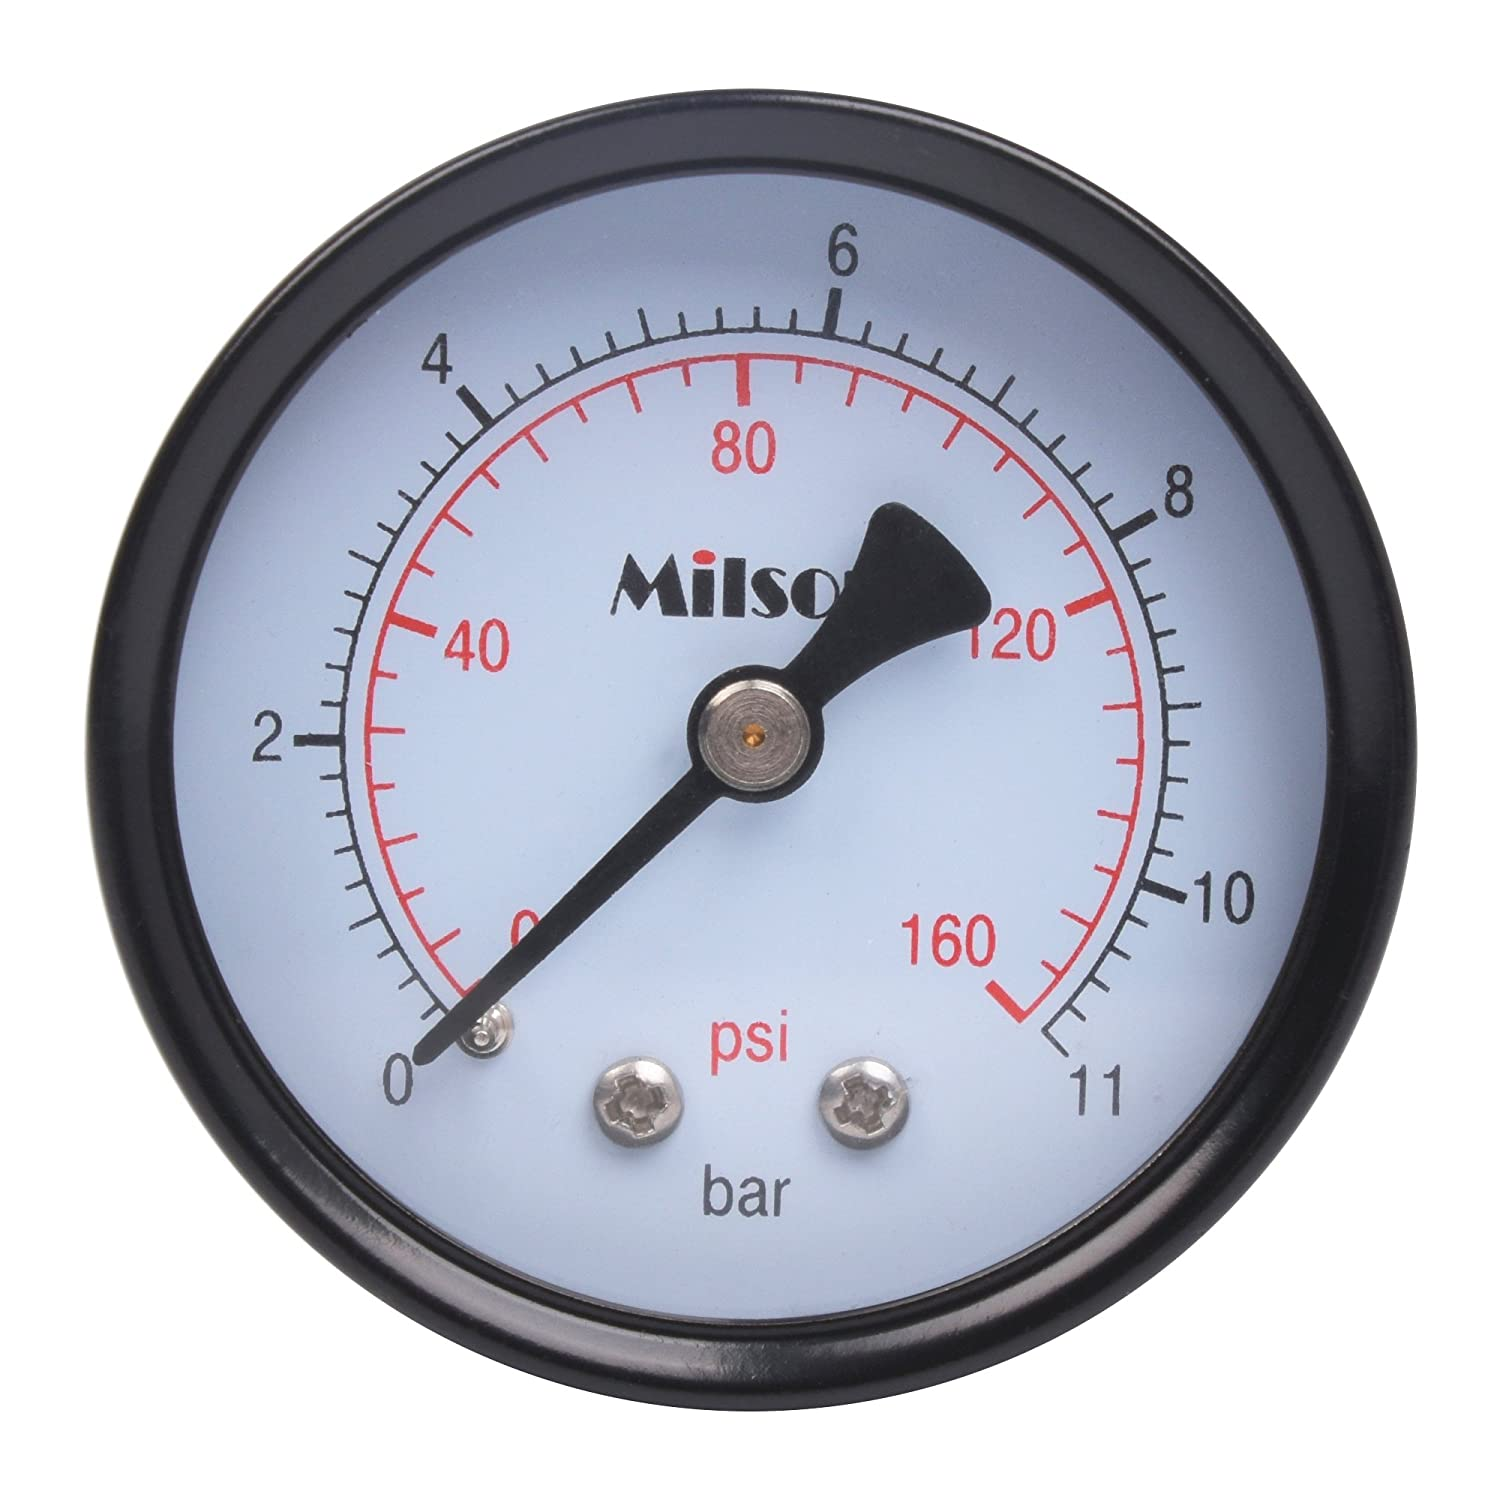 Milson Pressure Gauge 2 Black Steel Case Back Mount 1 4NPT 0 160 Psi Bar Accuracy 2.0 Brass Internal Multiple Function